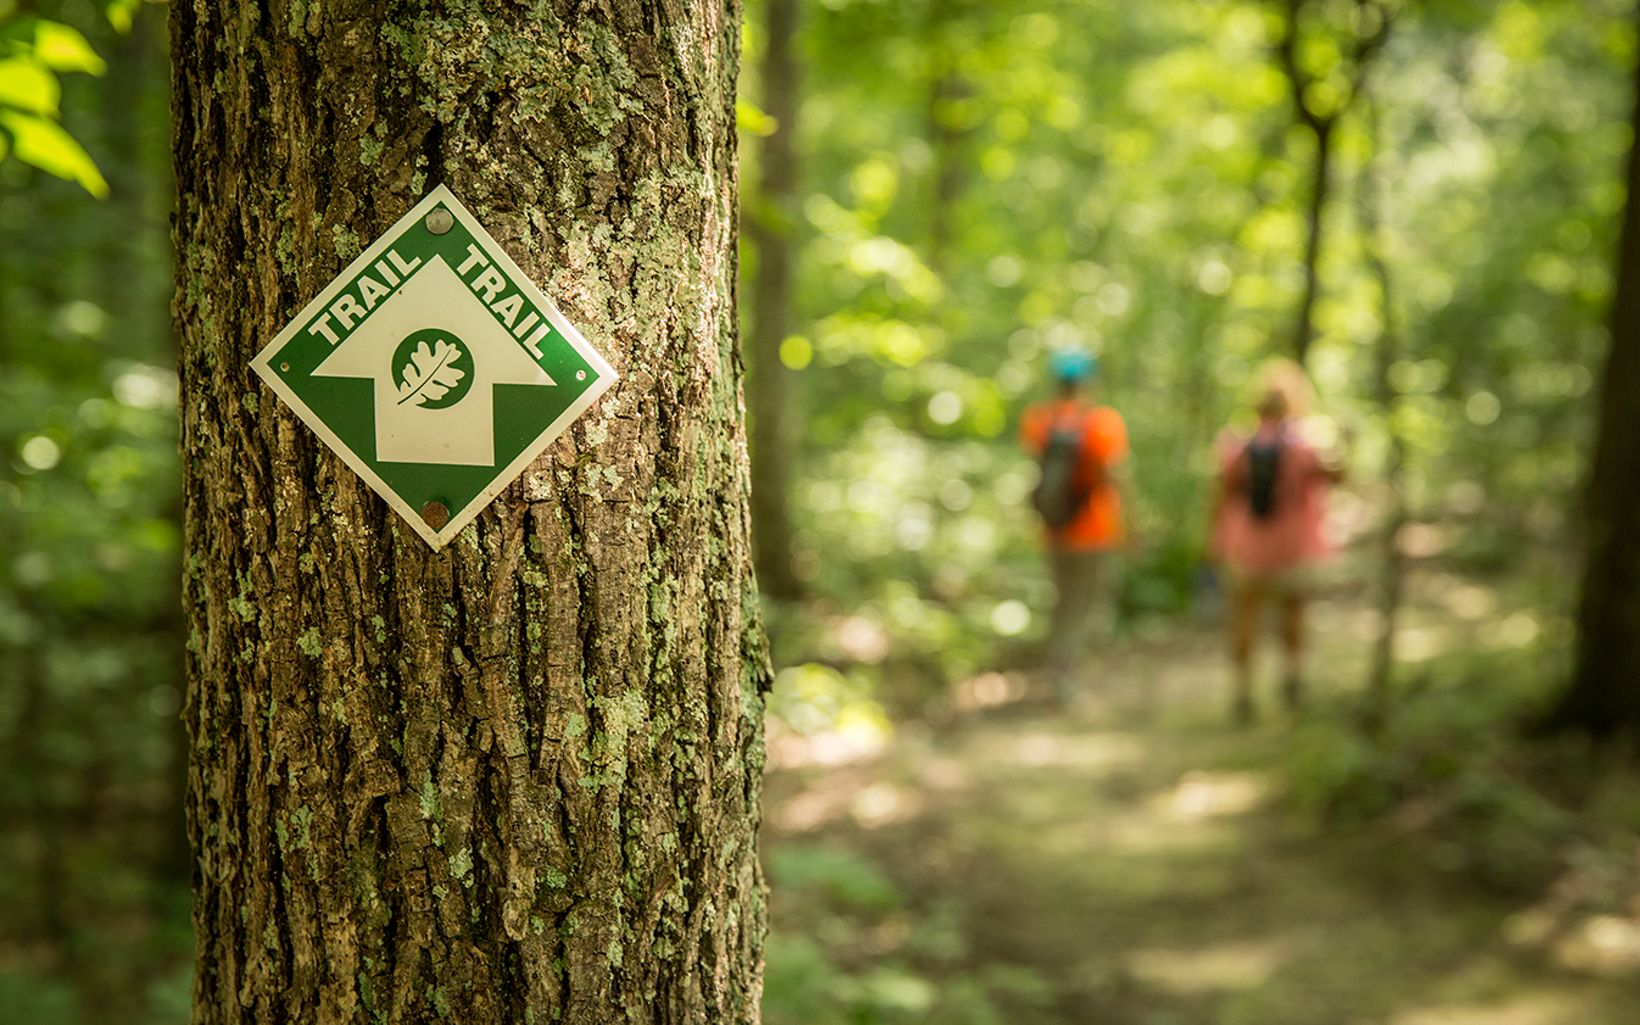 A small trail sign hangs on a tree as hikers walk in the background.